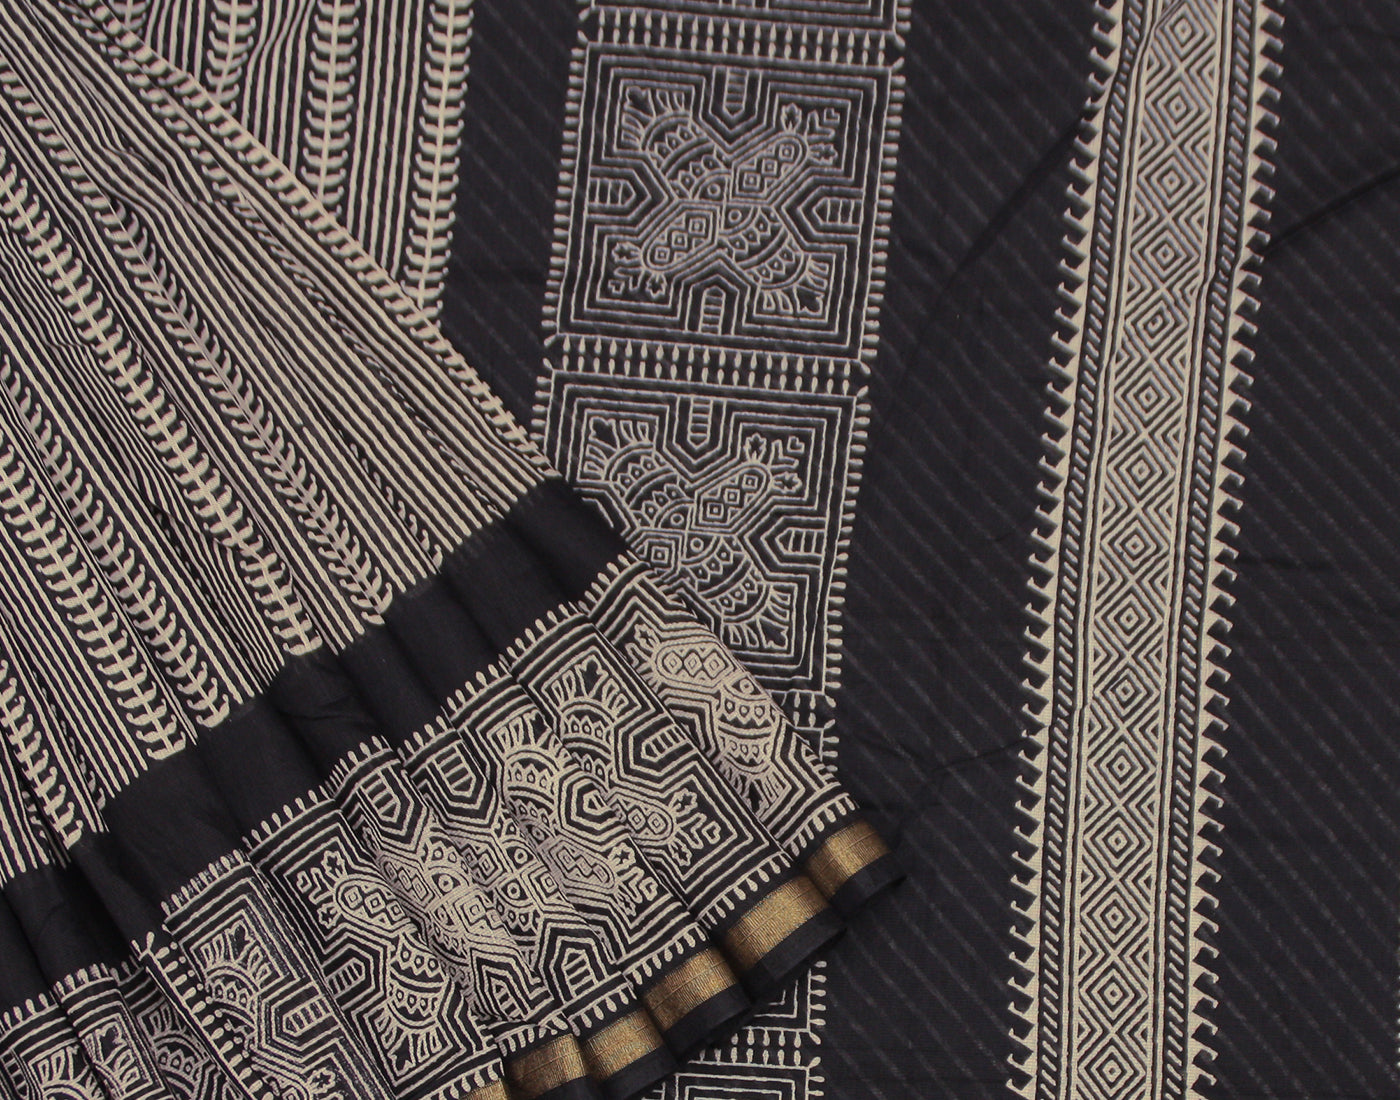 Black Floral Printed Bahar Saree With Golden Zari Border